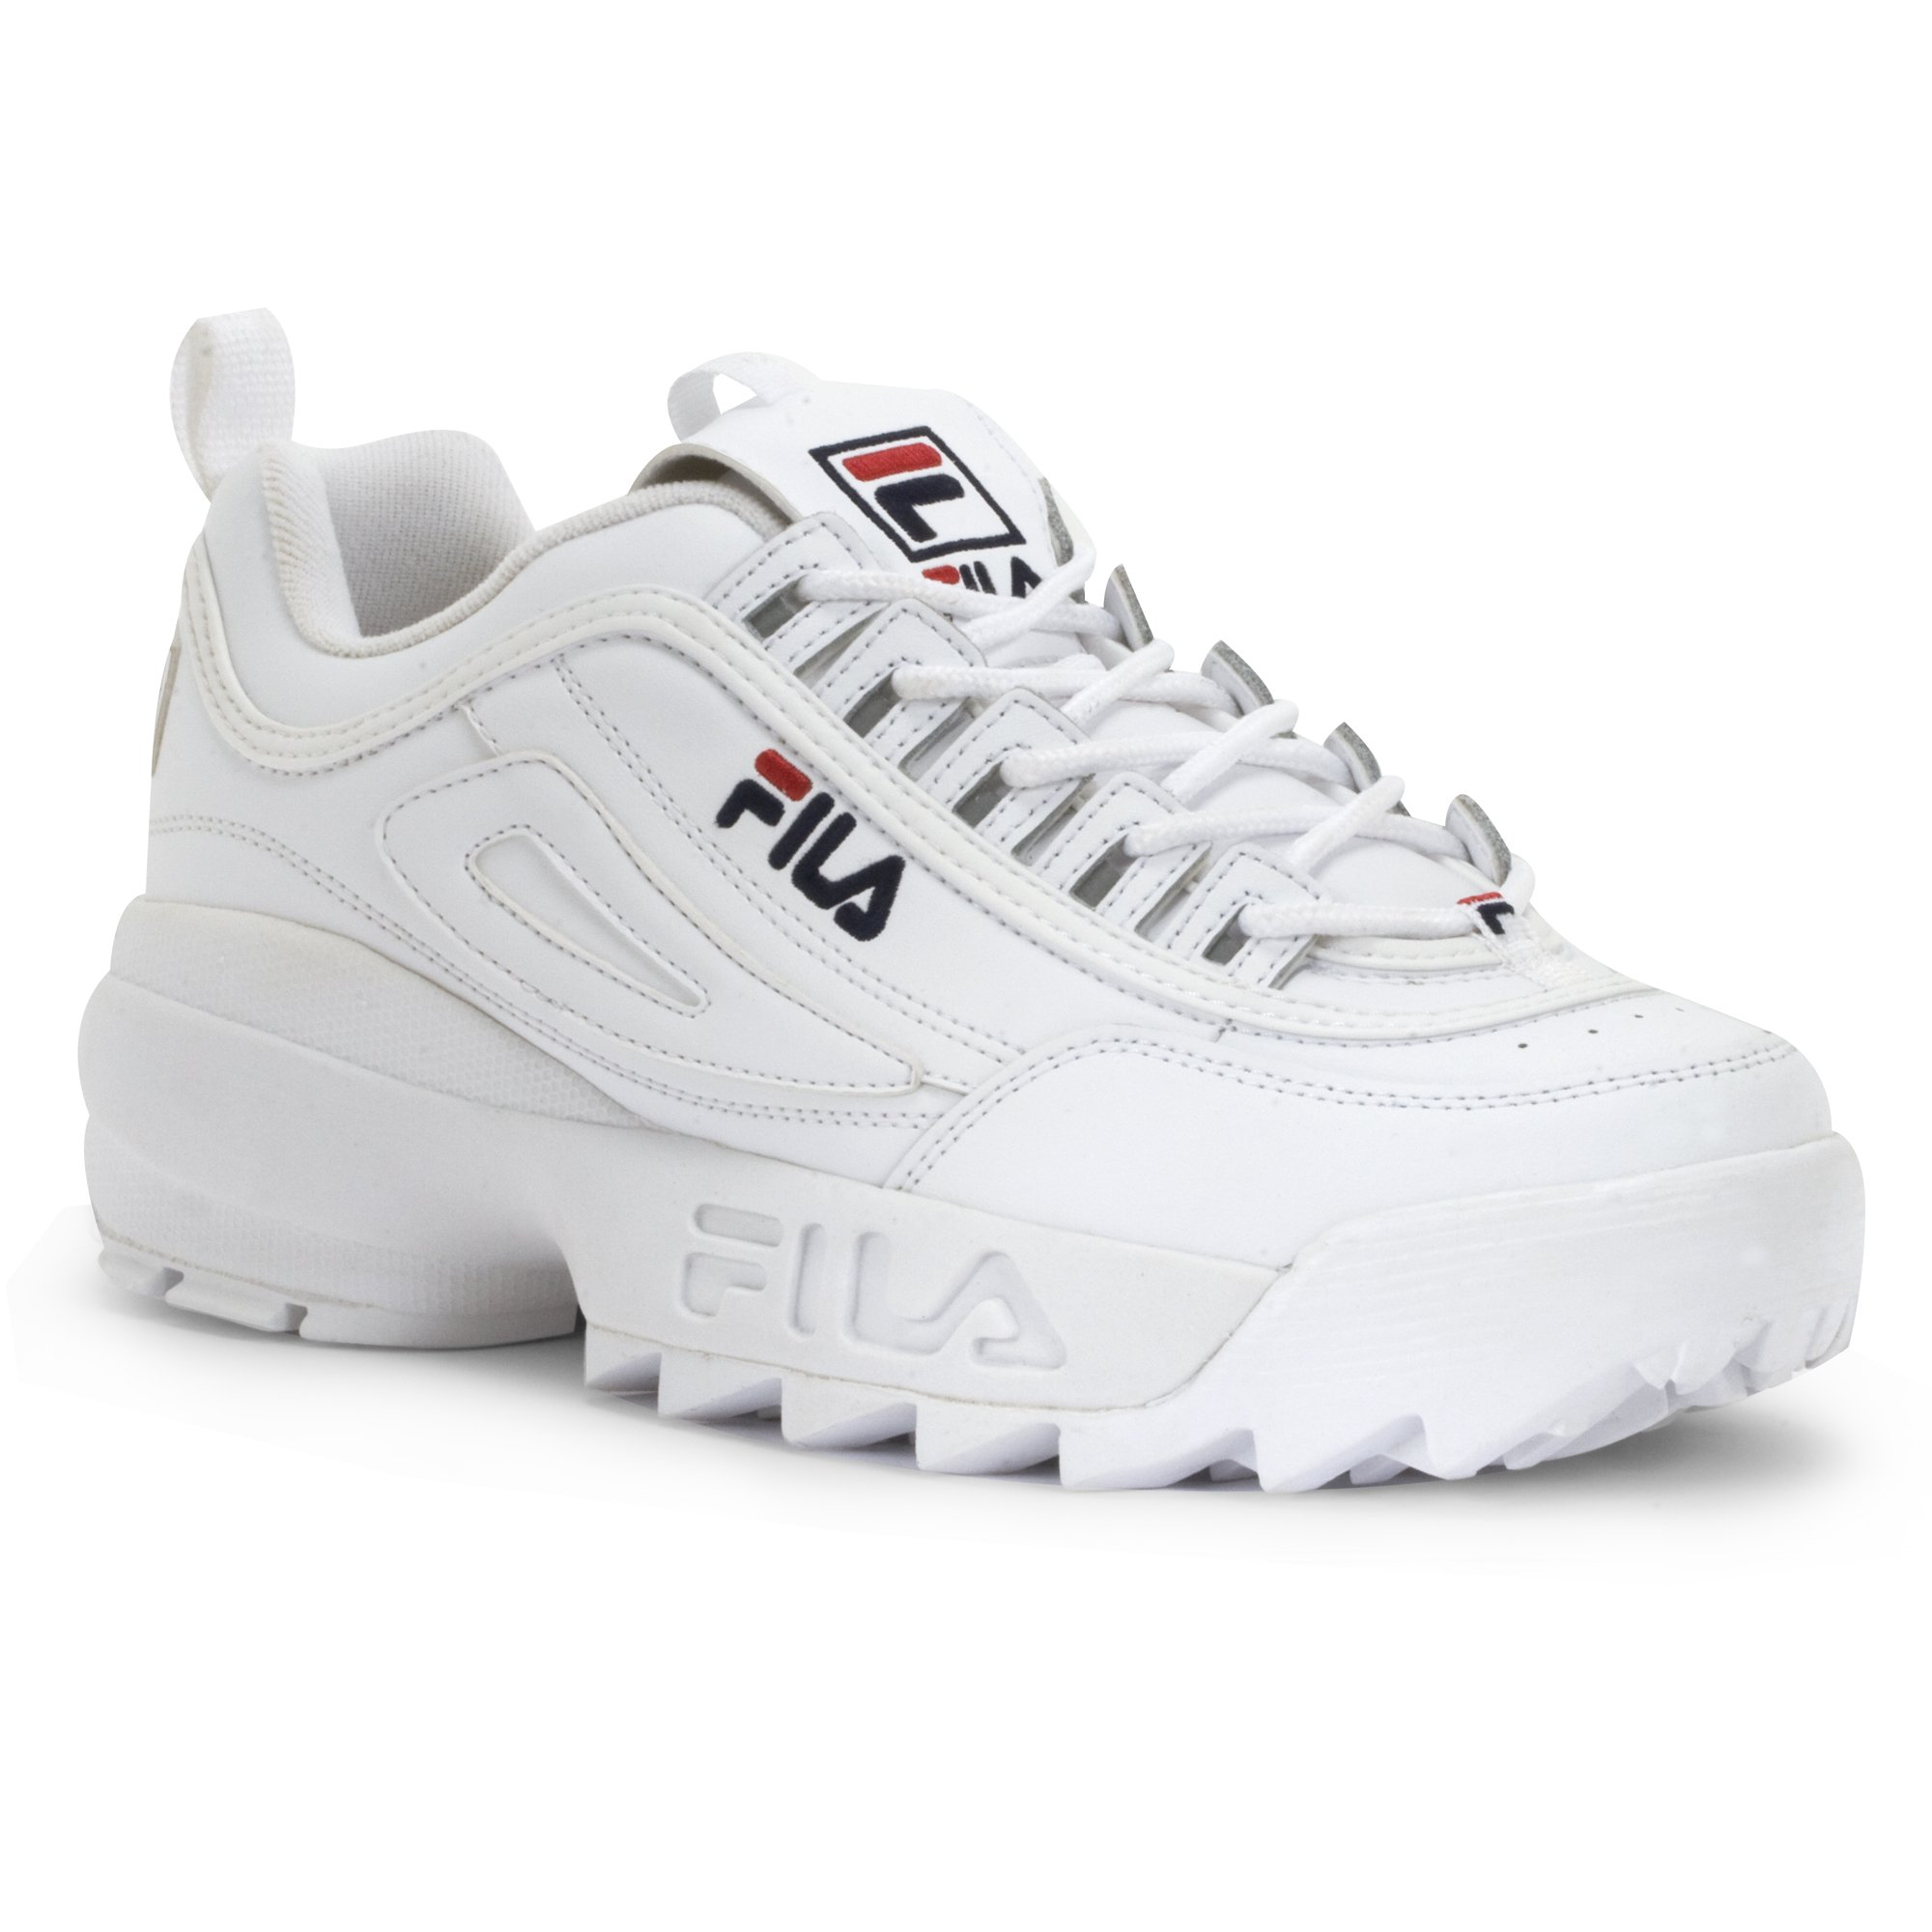 3fdecd0612fe9 Galleon - Fila Men s Disruptor II Sneakers